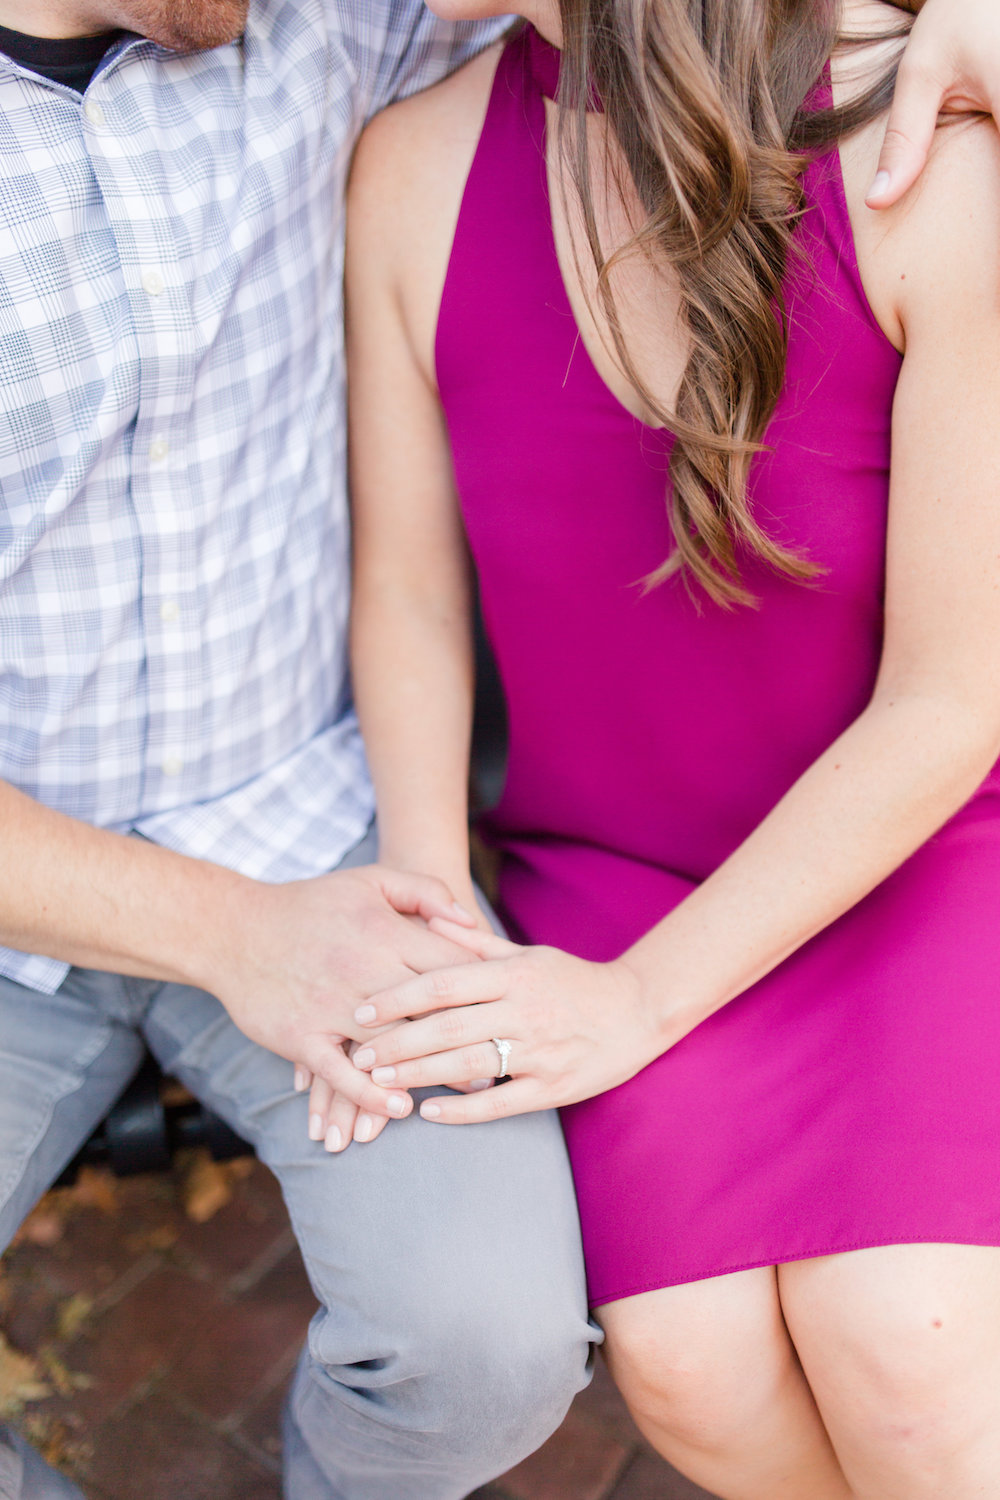 Fall Old Town Alexandria Engagement Photos Megan Kelsey Photography and Sincerely Pete Events - 9.jpg